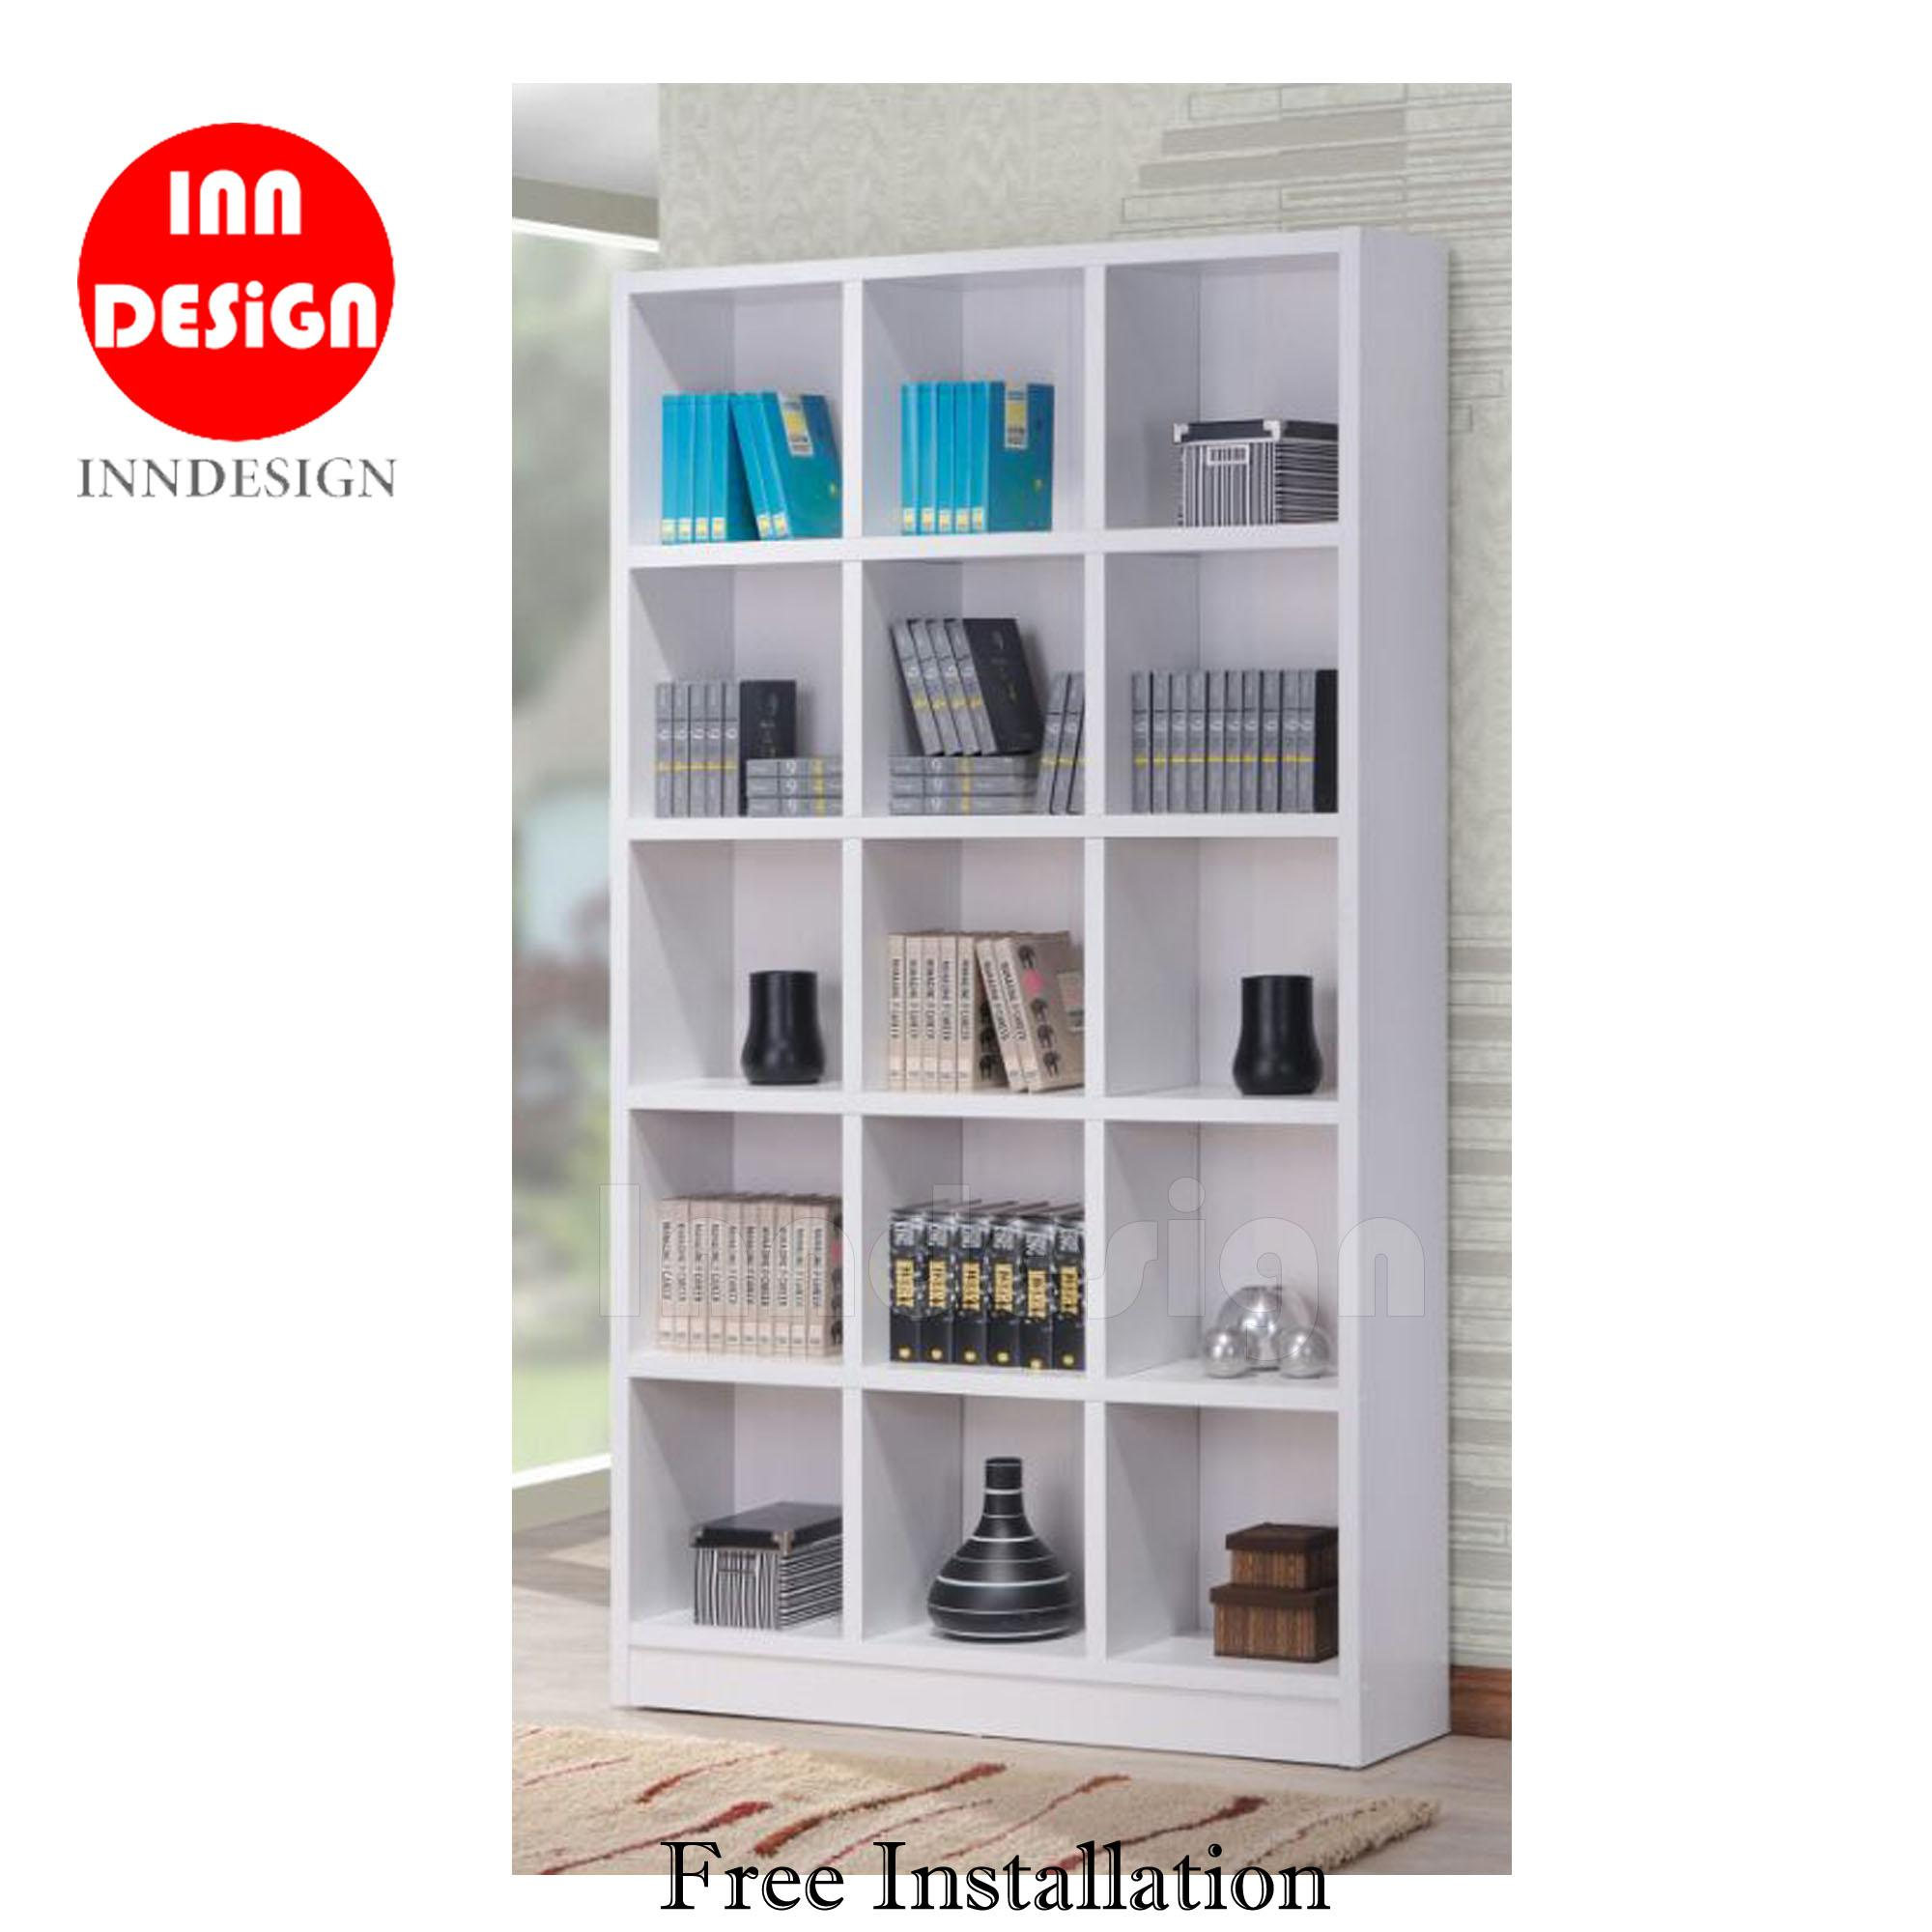 Smith 15 BookShelf / Cabinet / Filling Cabinet / Office Stand / Divider (Free Installation)